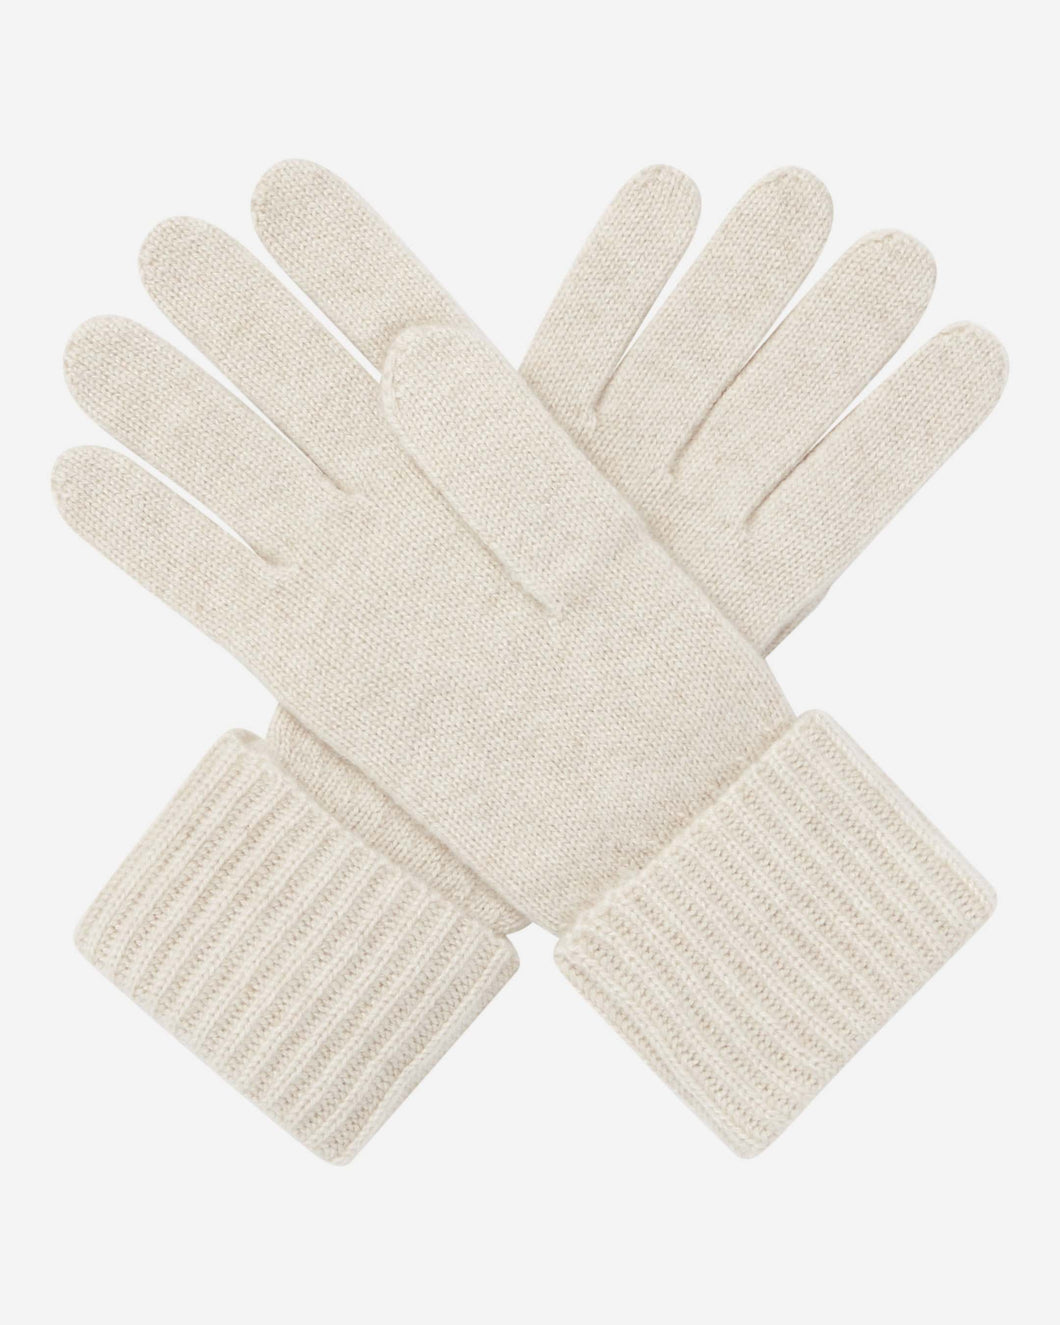 Ribbed Cashmere Glove Ecru White